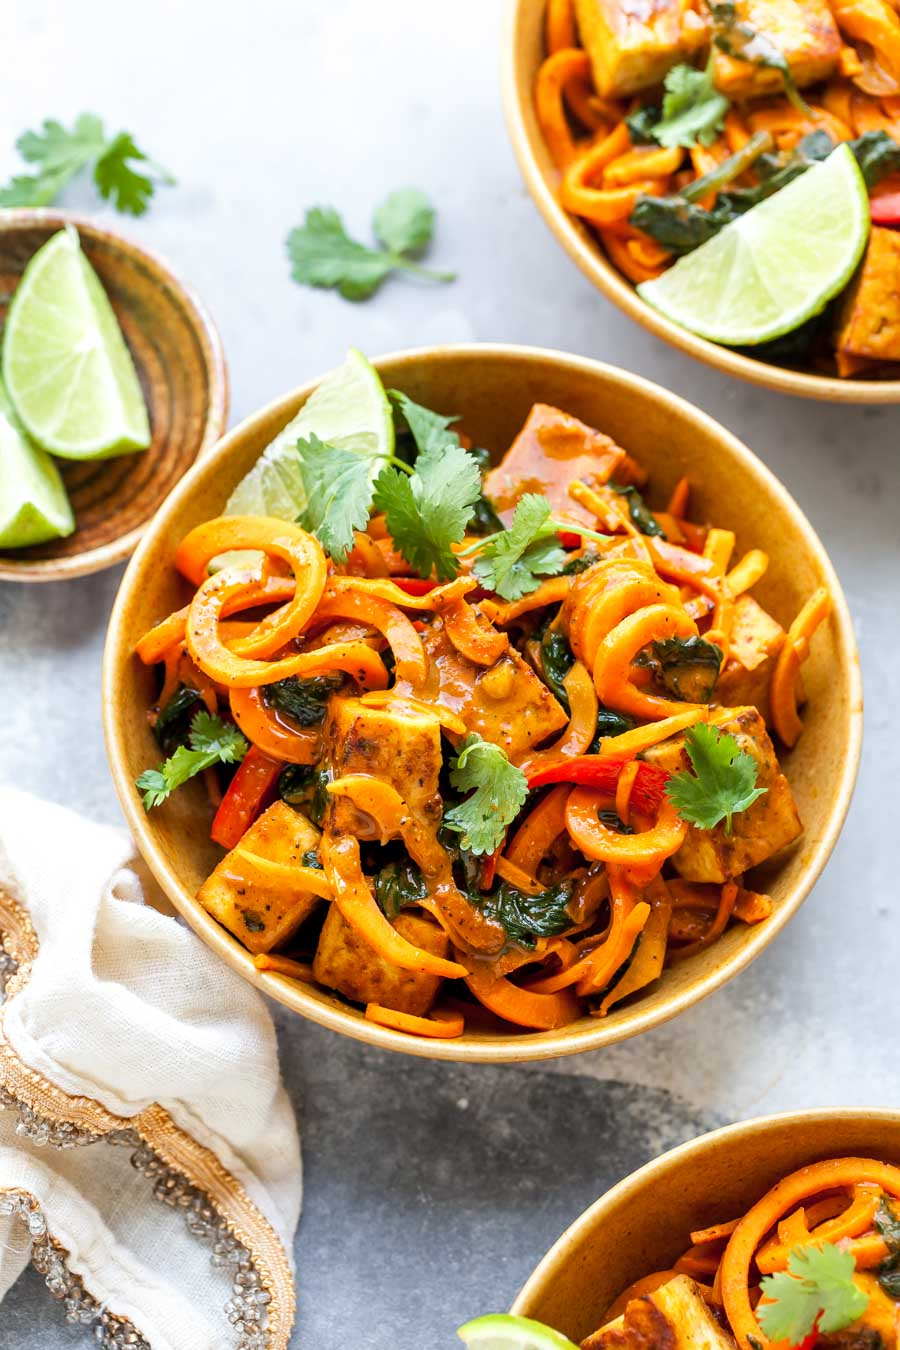 Gluten free sweet potato noodles with Thai curry sauce and crispy tofu